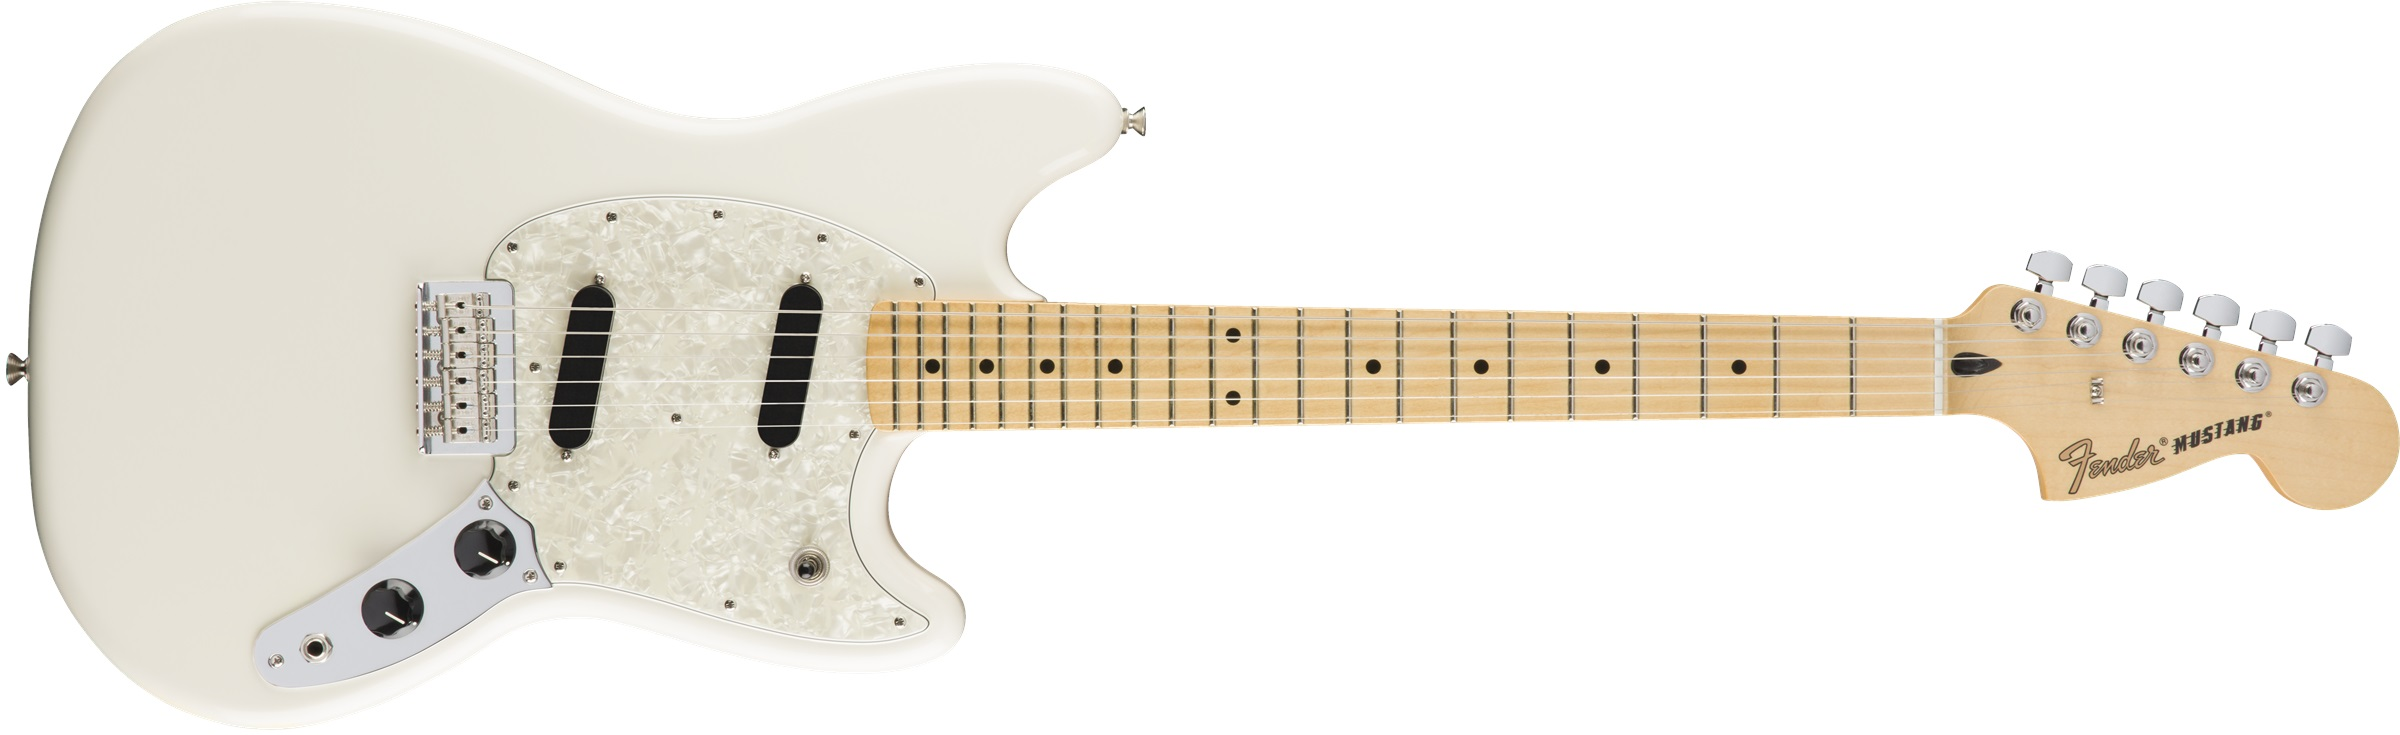 Fender Mustang MN OW